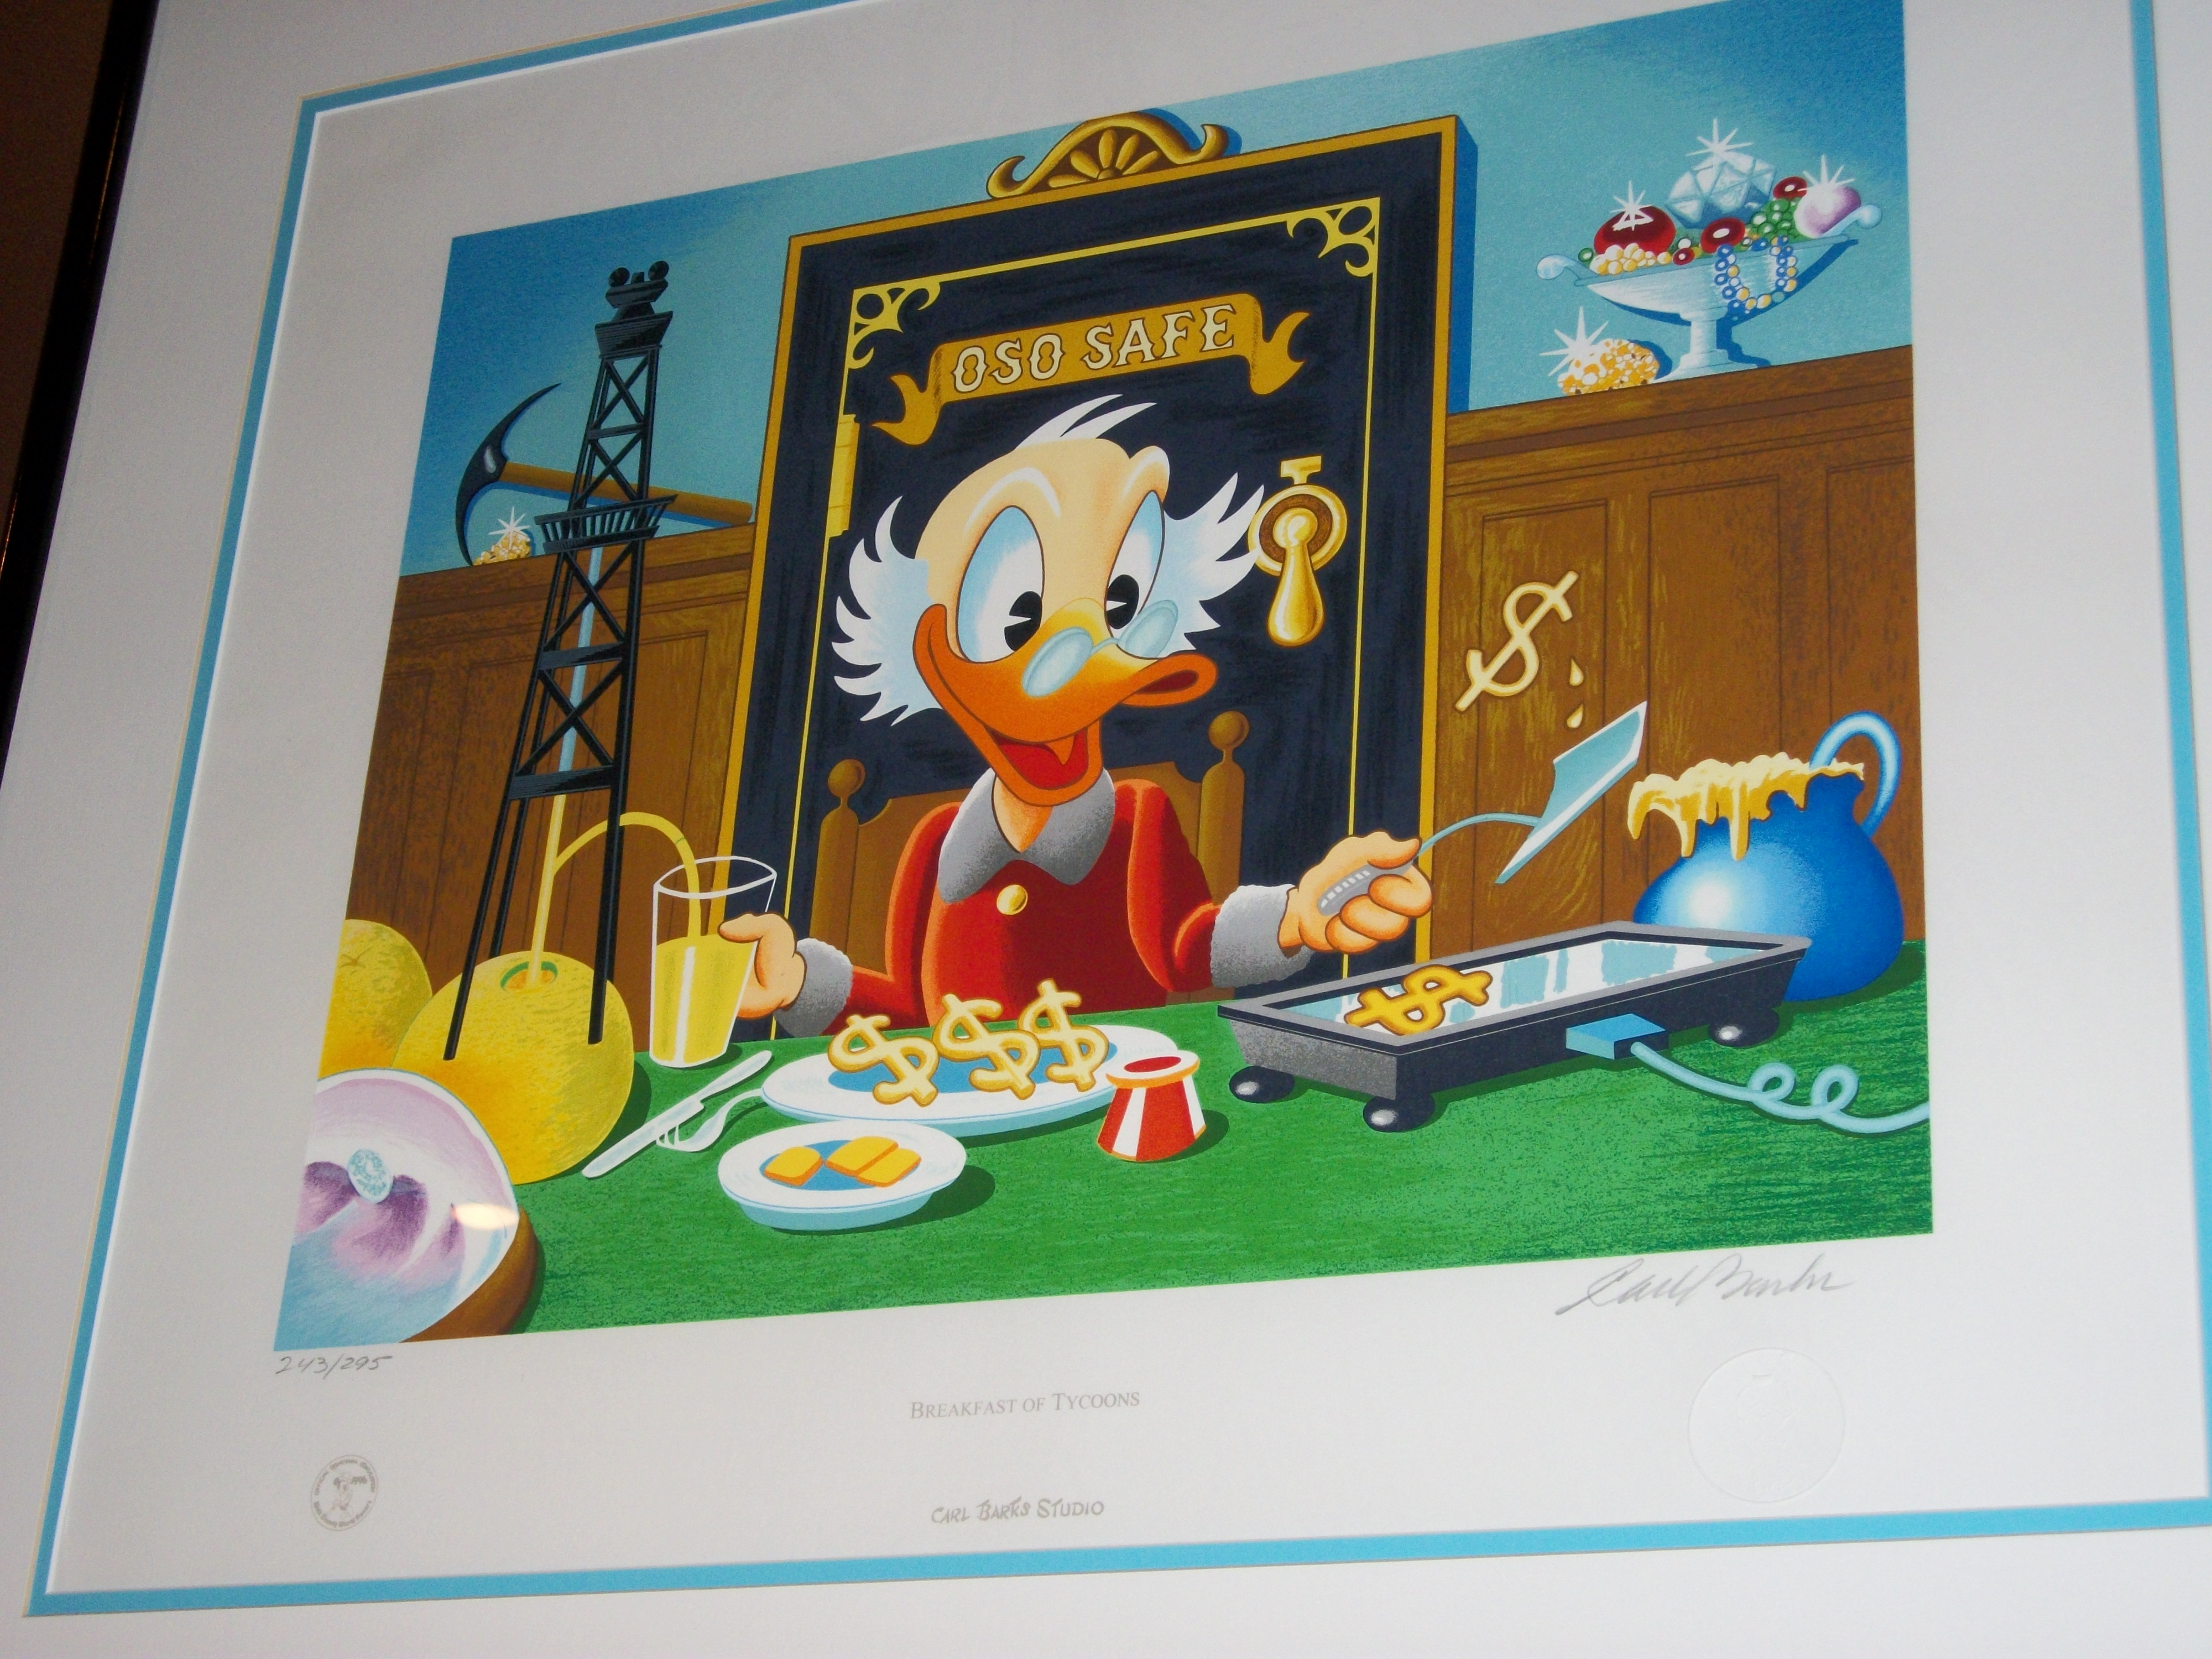 Breakfast of Tycoons - Carl Barks Scrooge McDuck Art